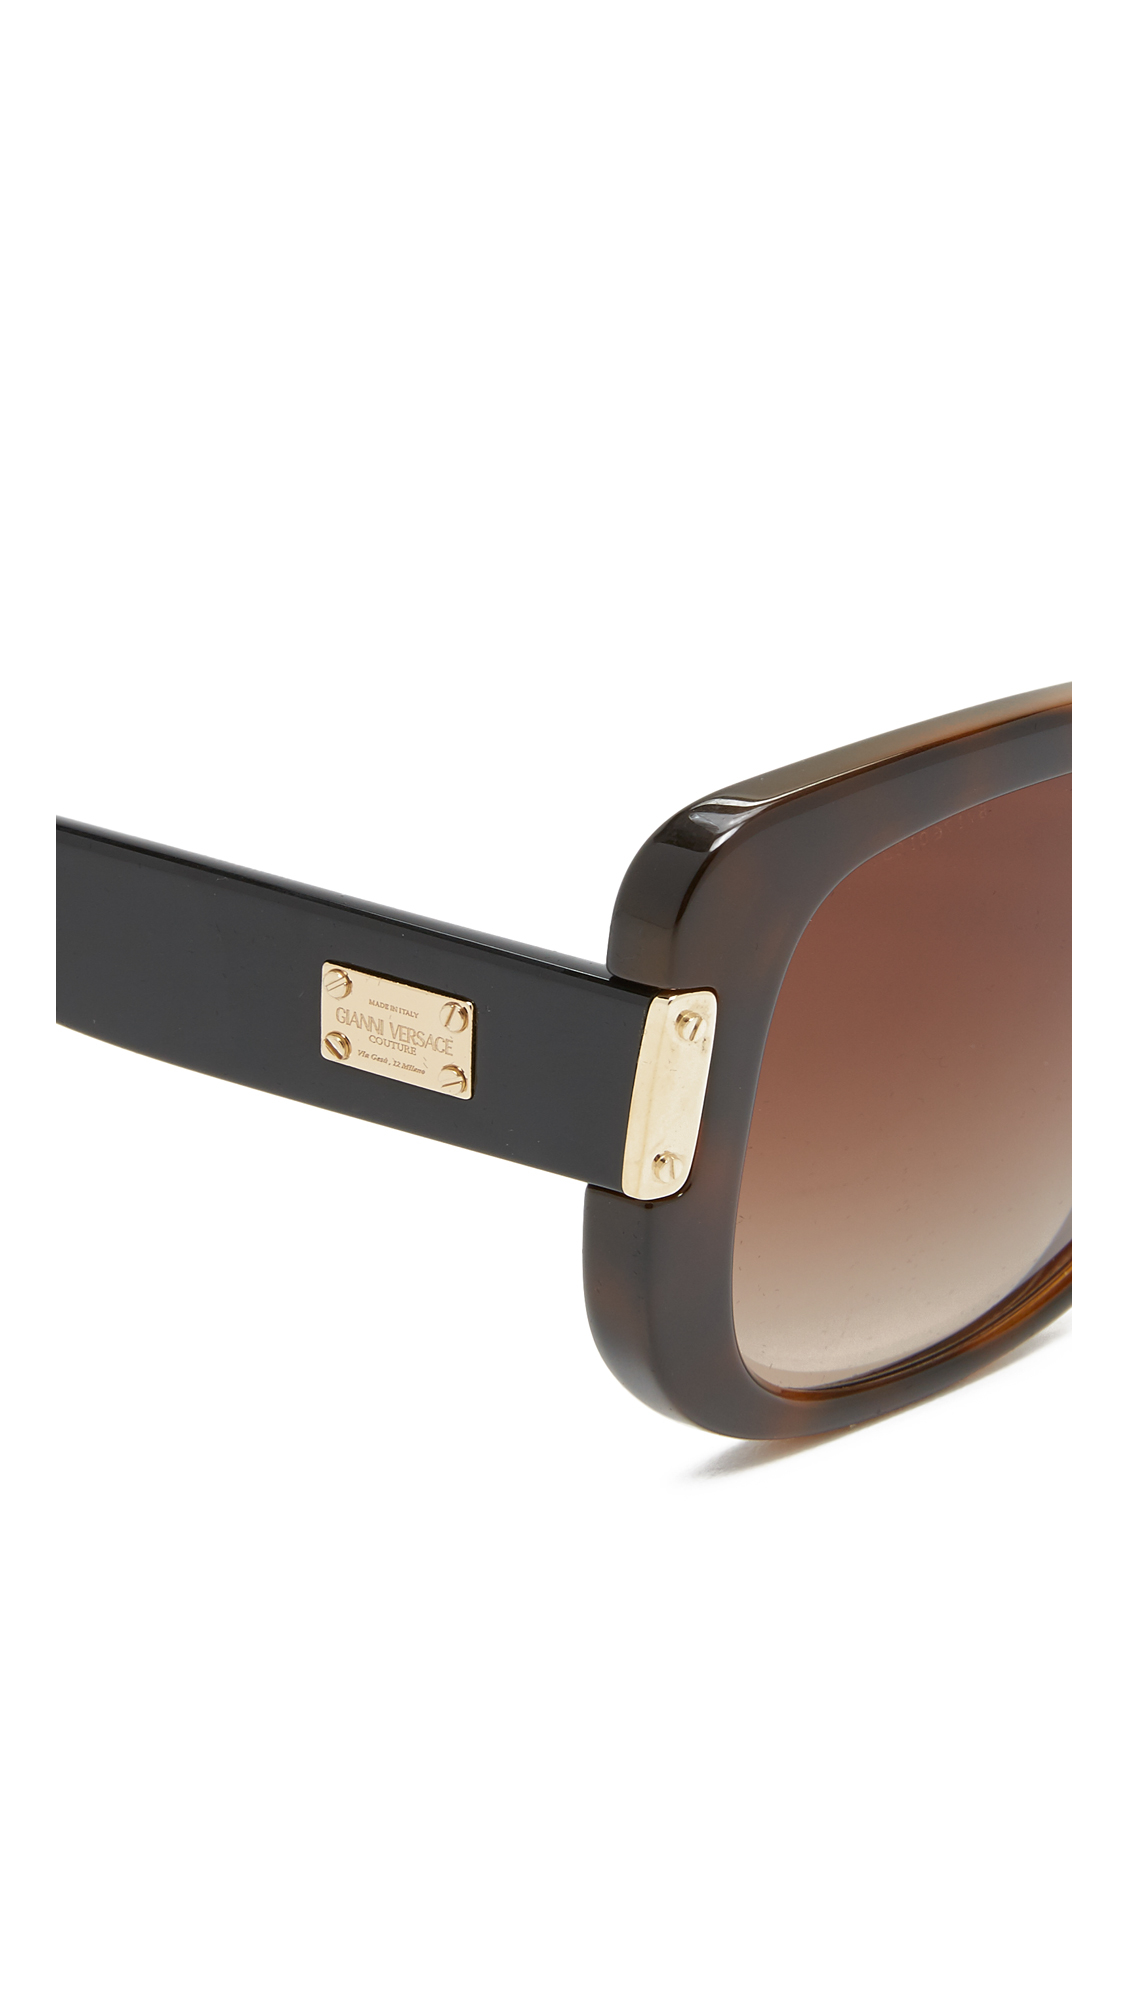 Square Frame Versace Glasses : Versace Square Sunglasses in Brown Lyst